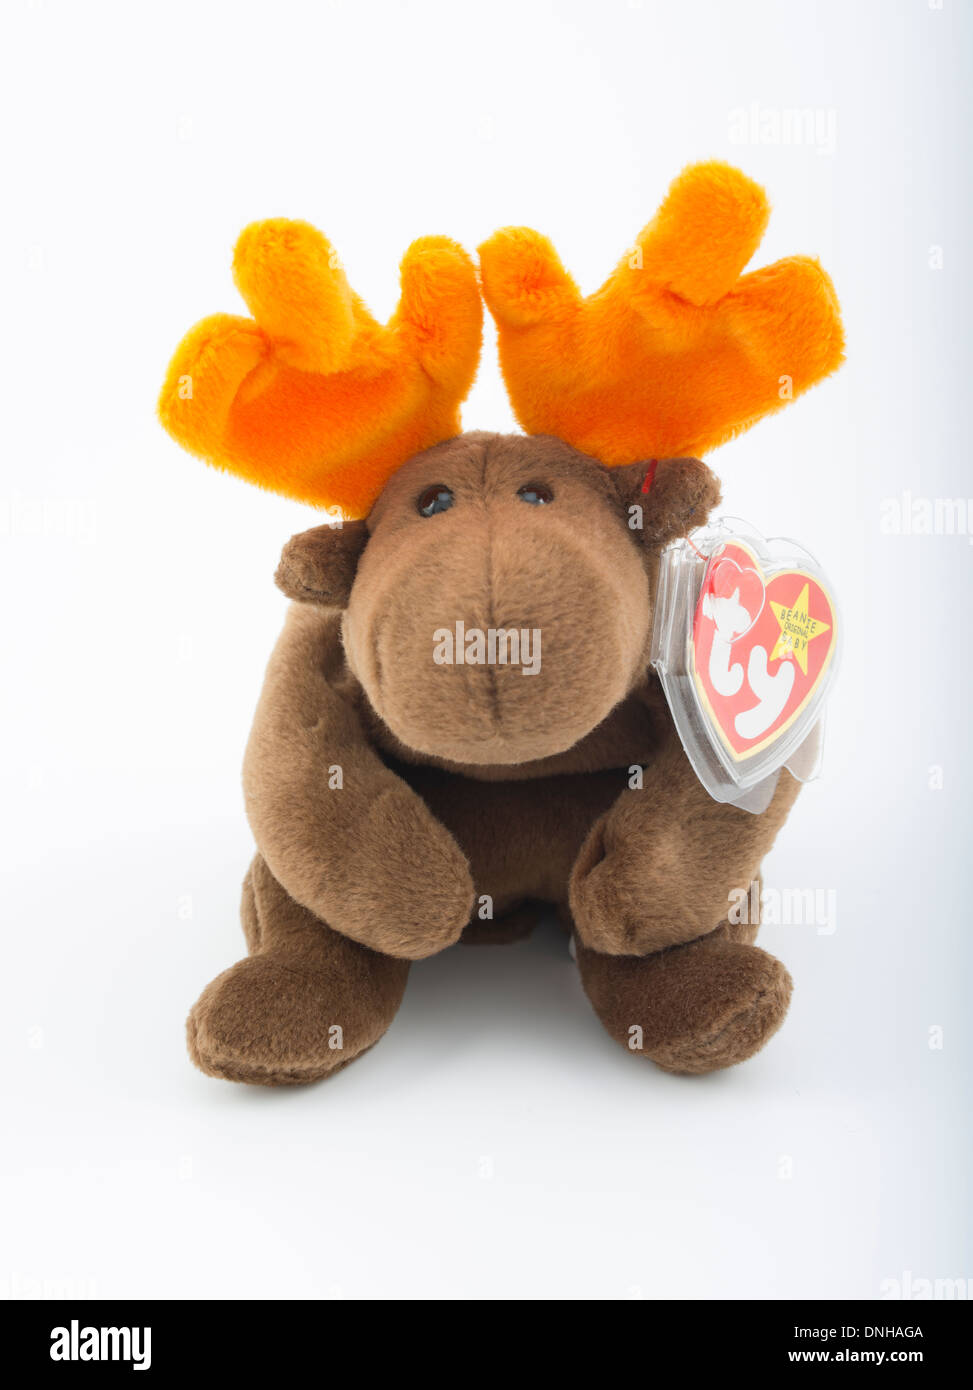 first generation 1993 Beanie Babies - Chocolate the Moose e4fda6430e7